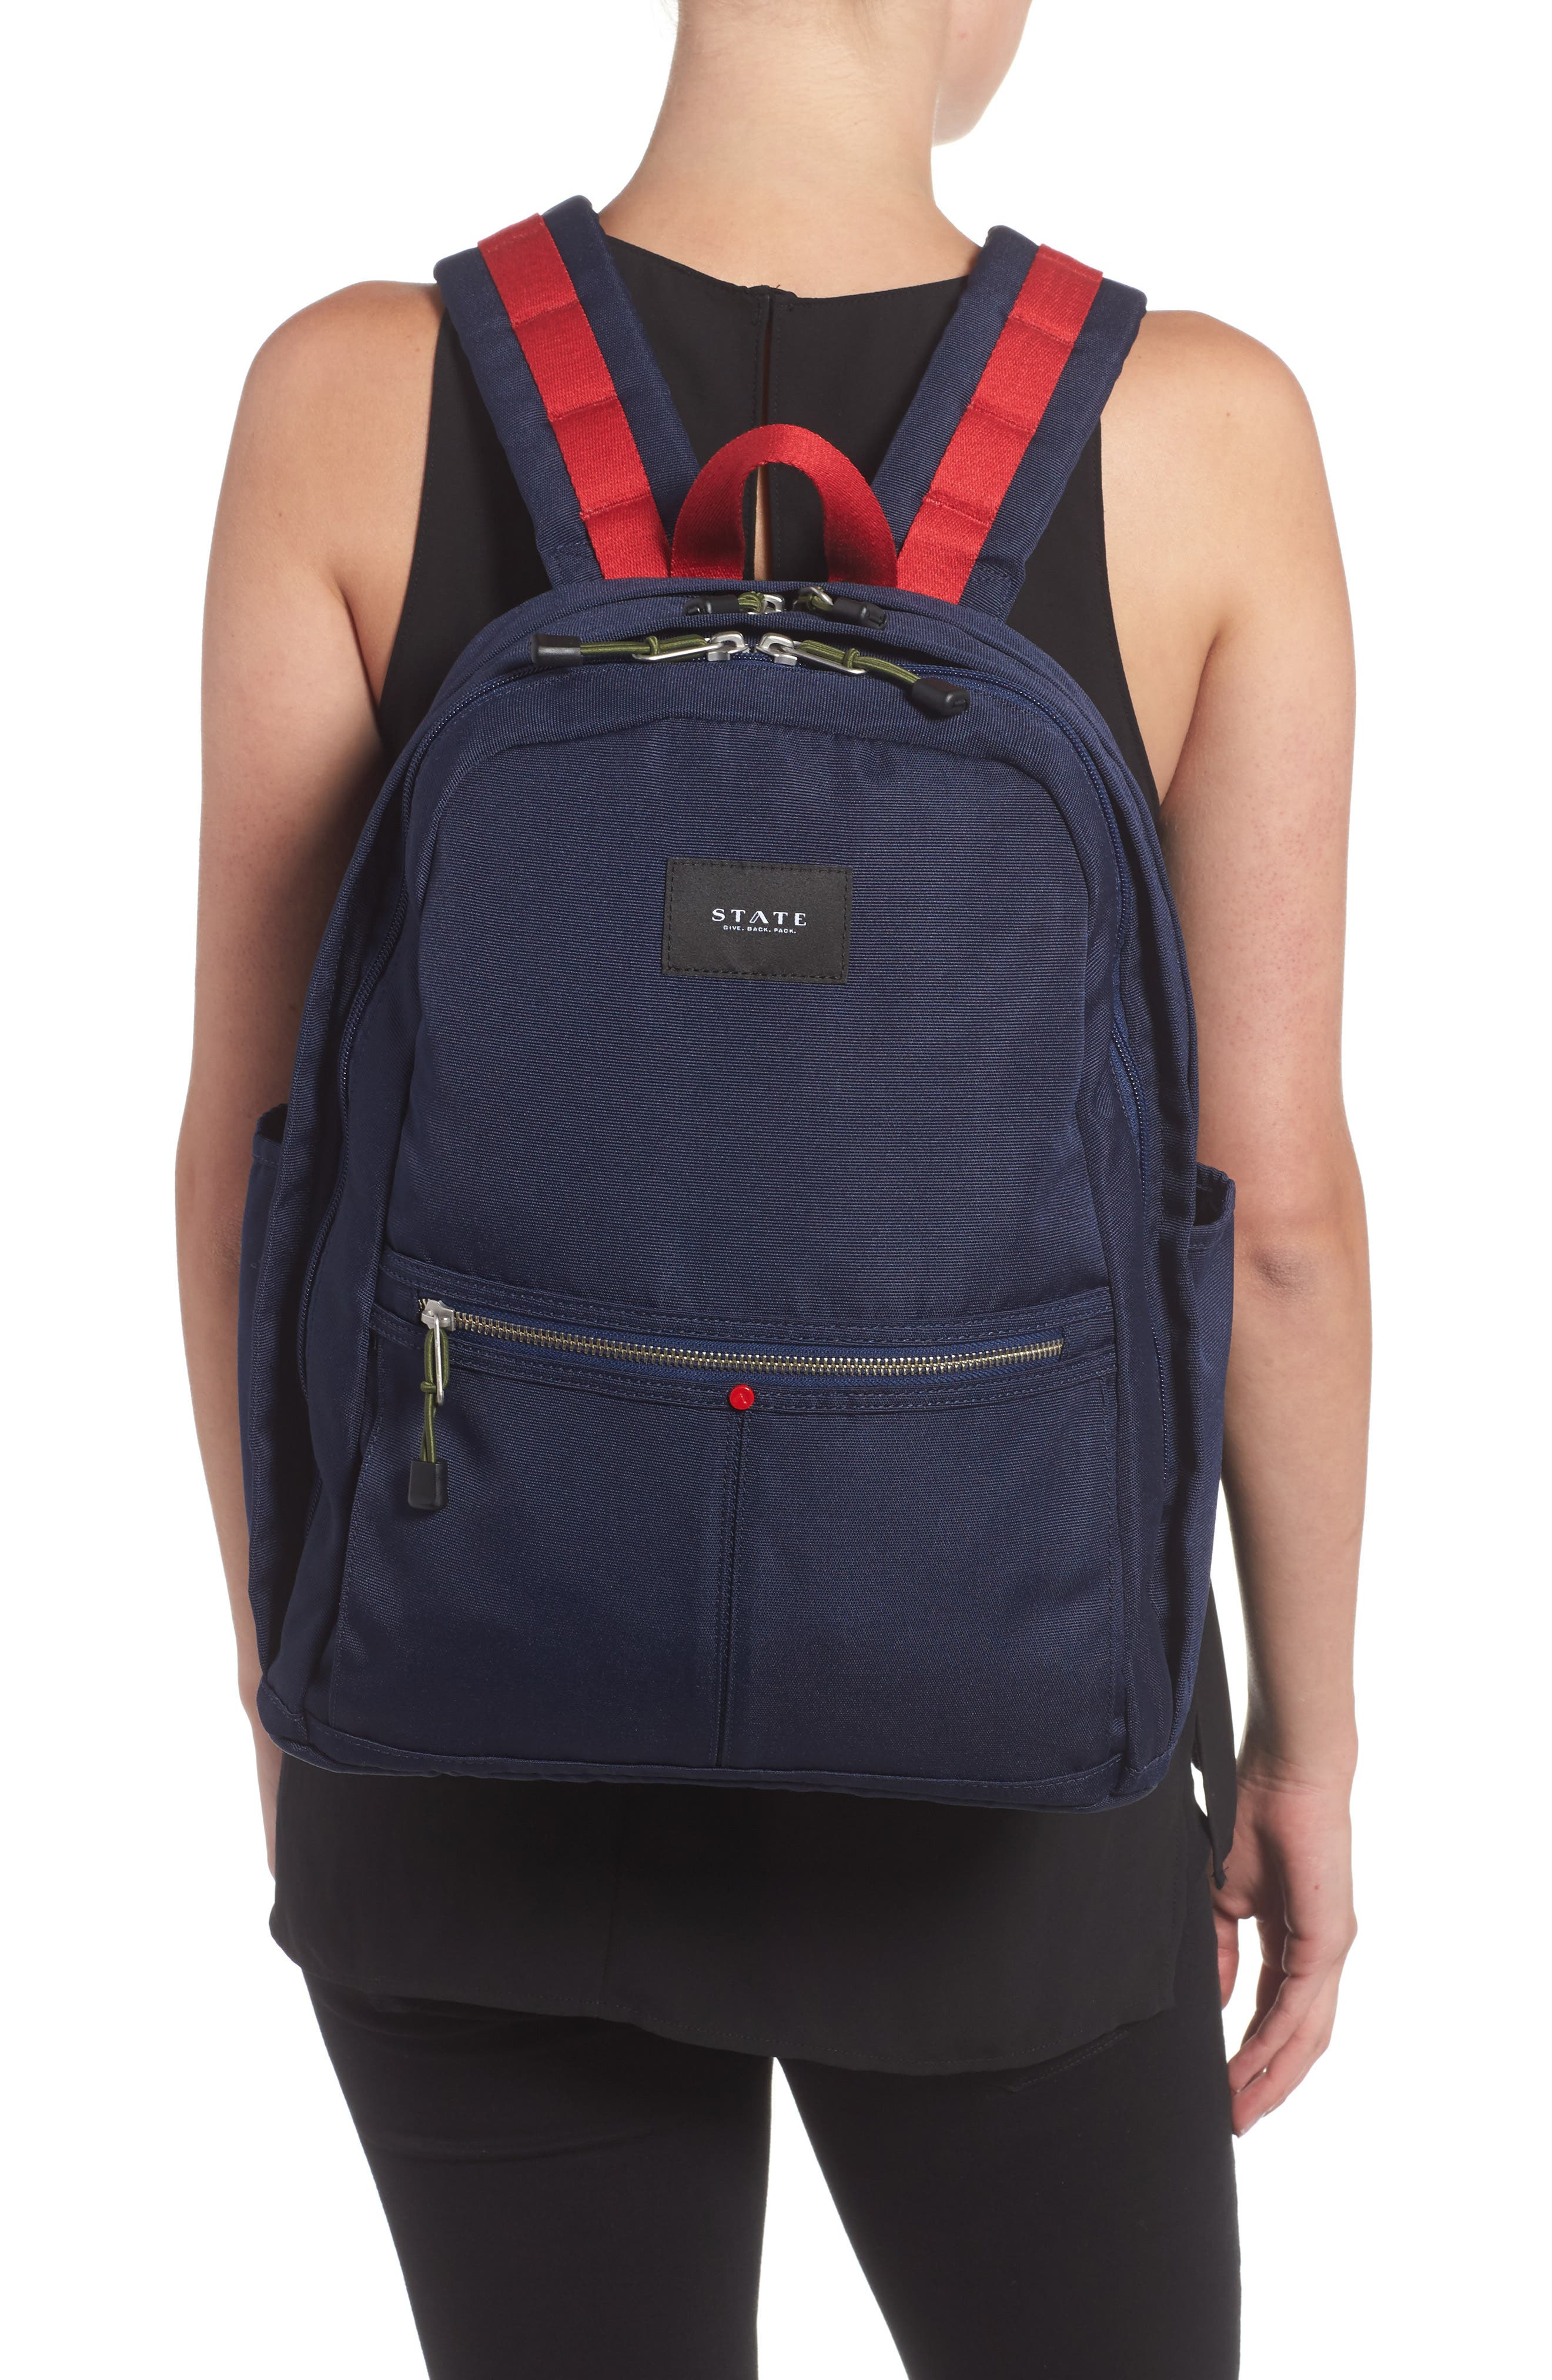 Williamsburg Bedford Backpack,                             Alternate thumbnail 2, color,                             Navy